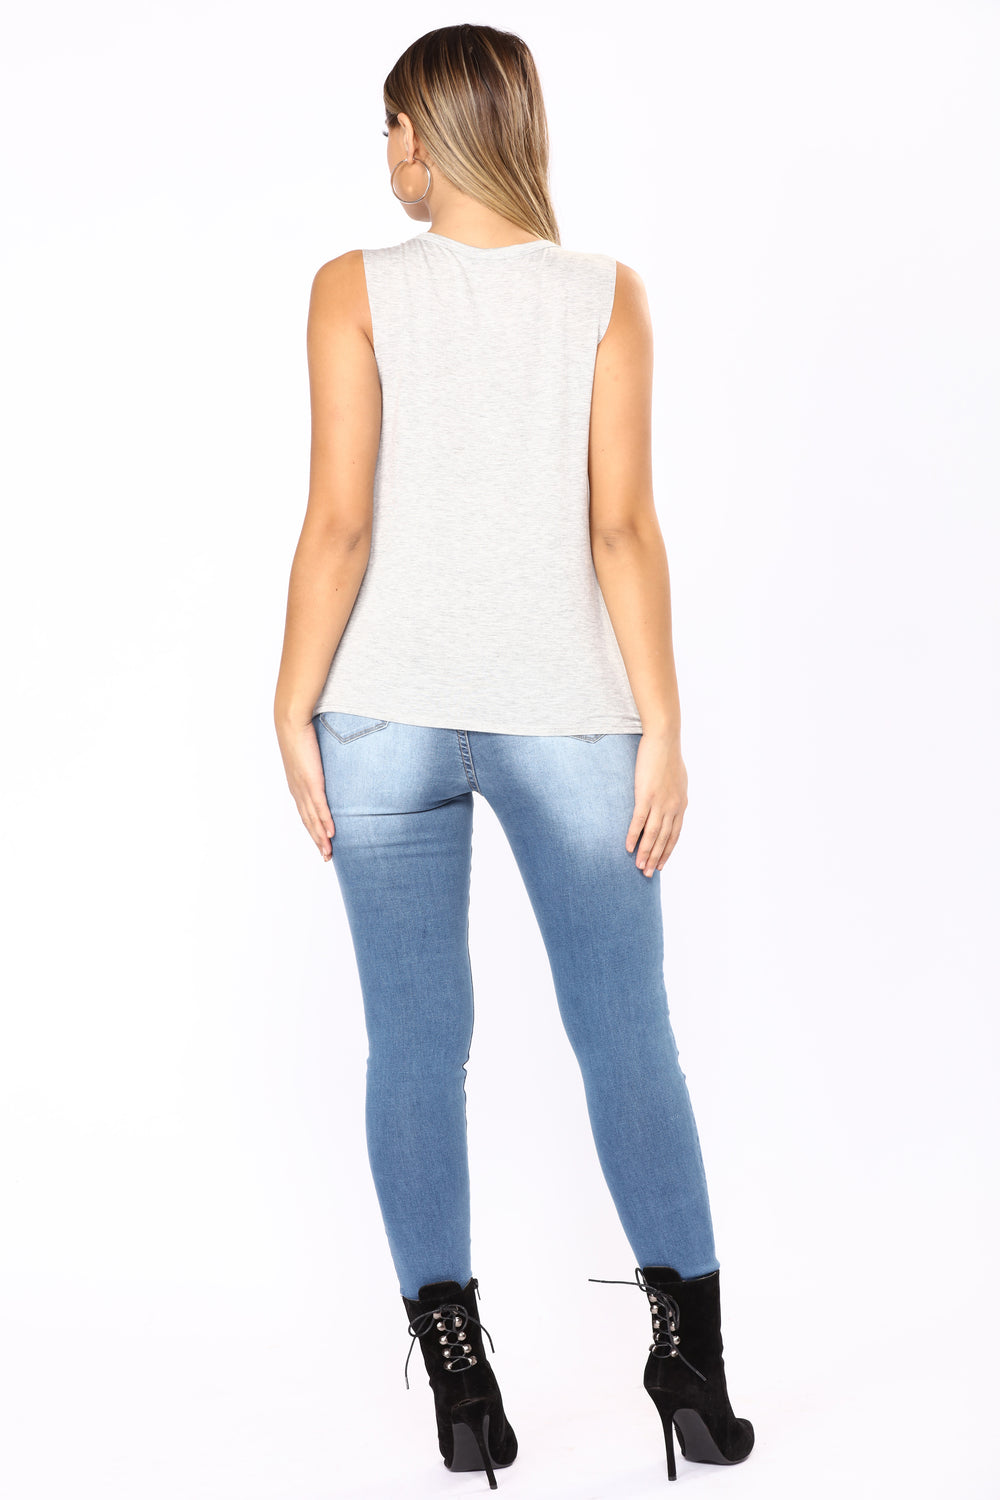 Secret Society Skinny Jeans - Medium Blue Wash